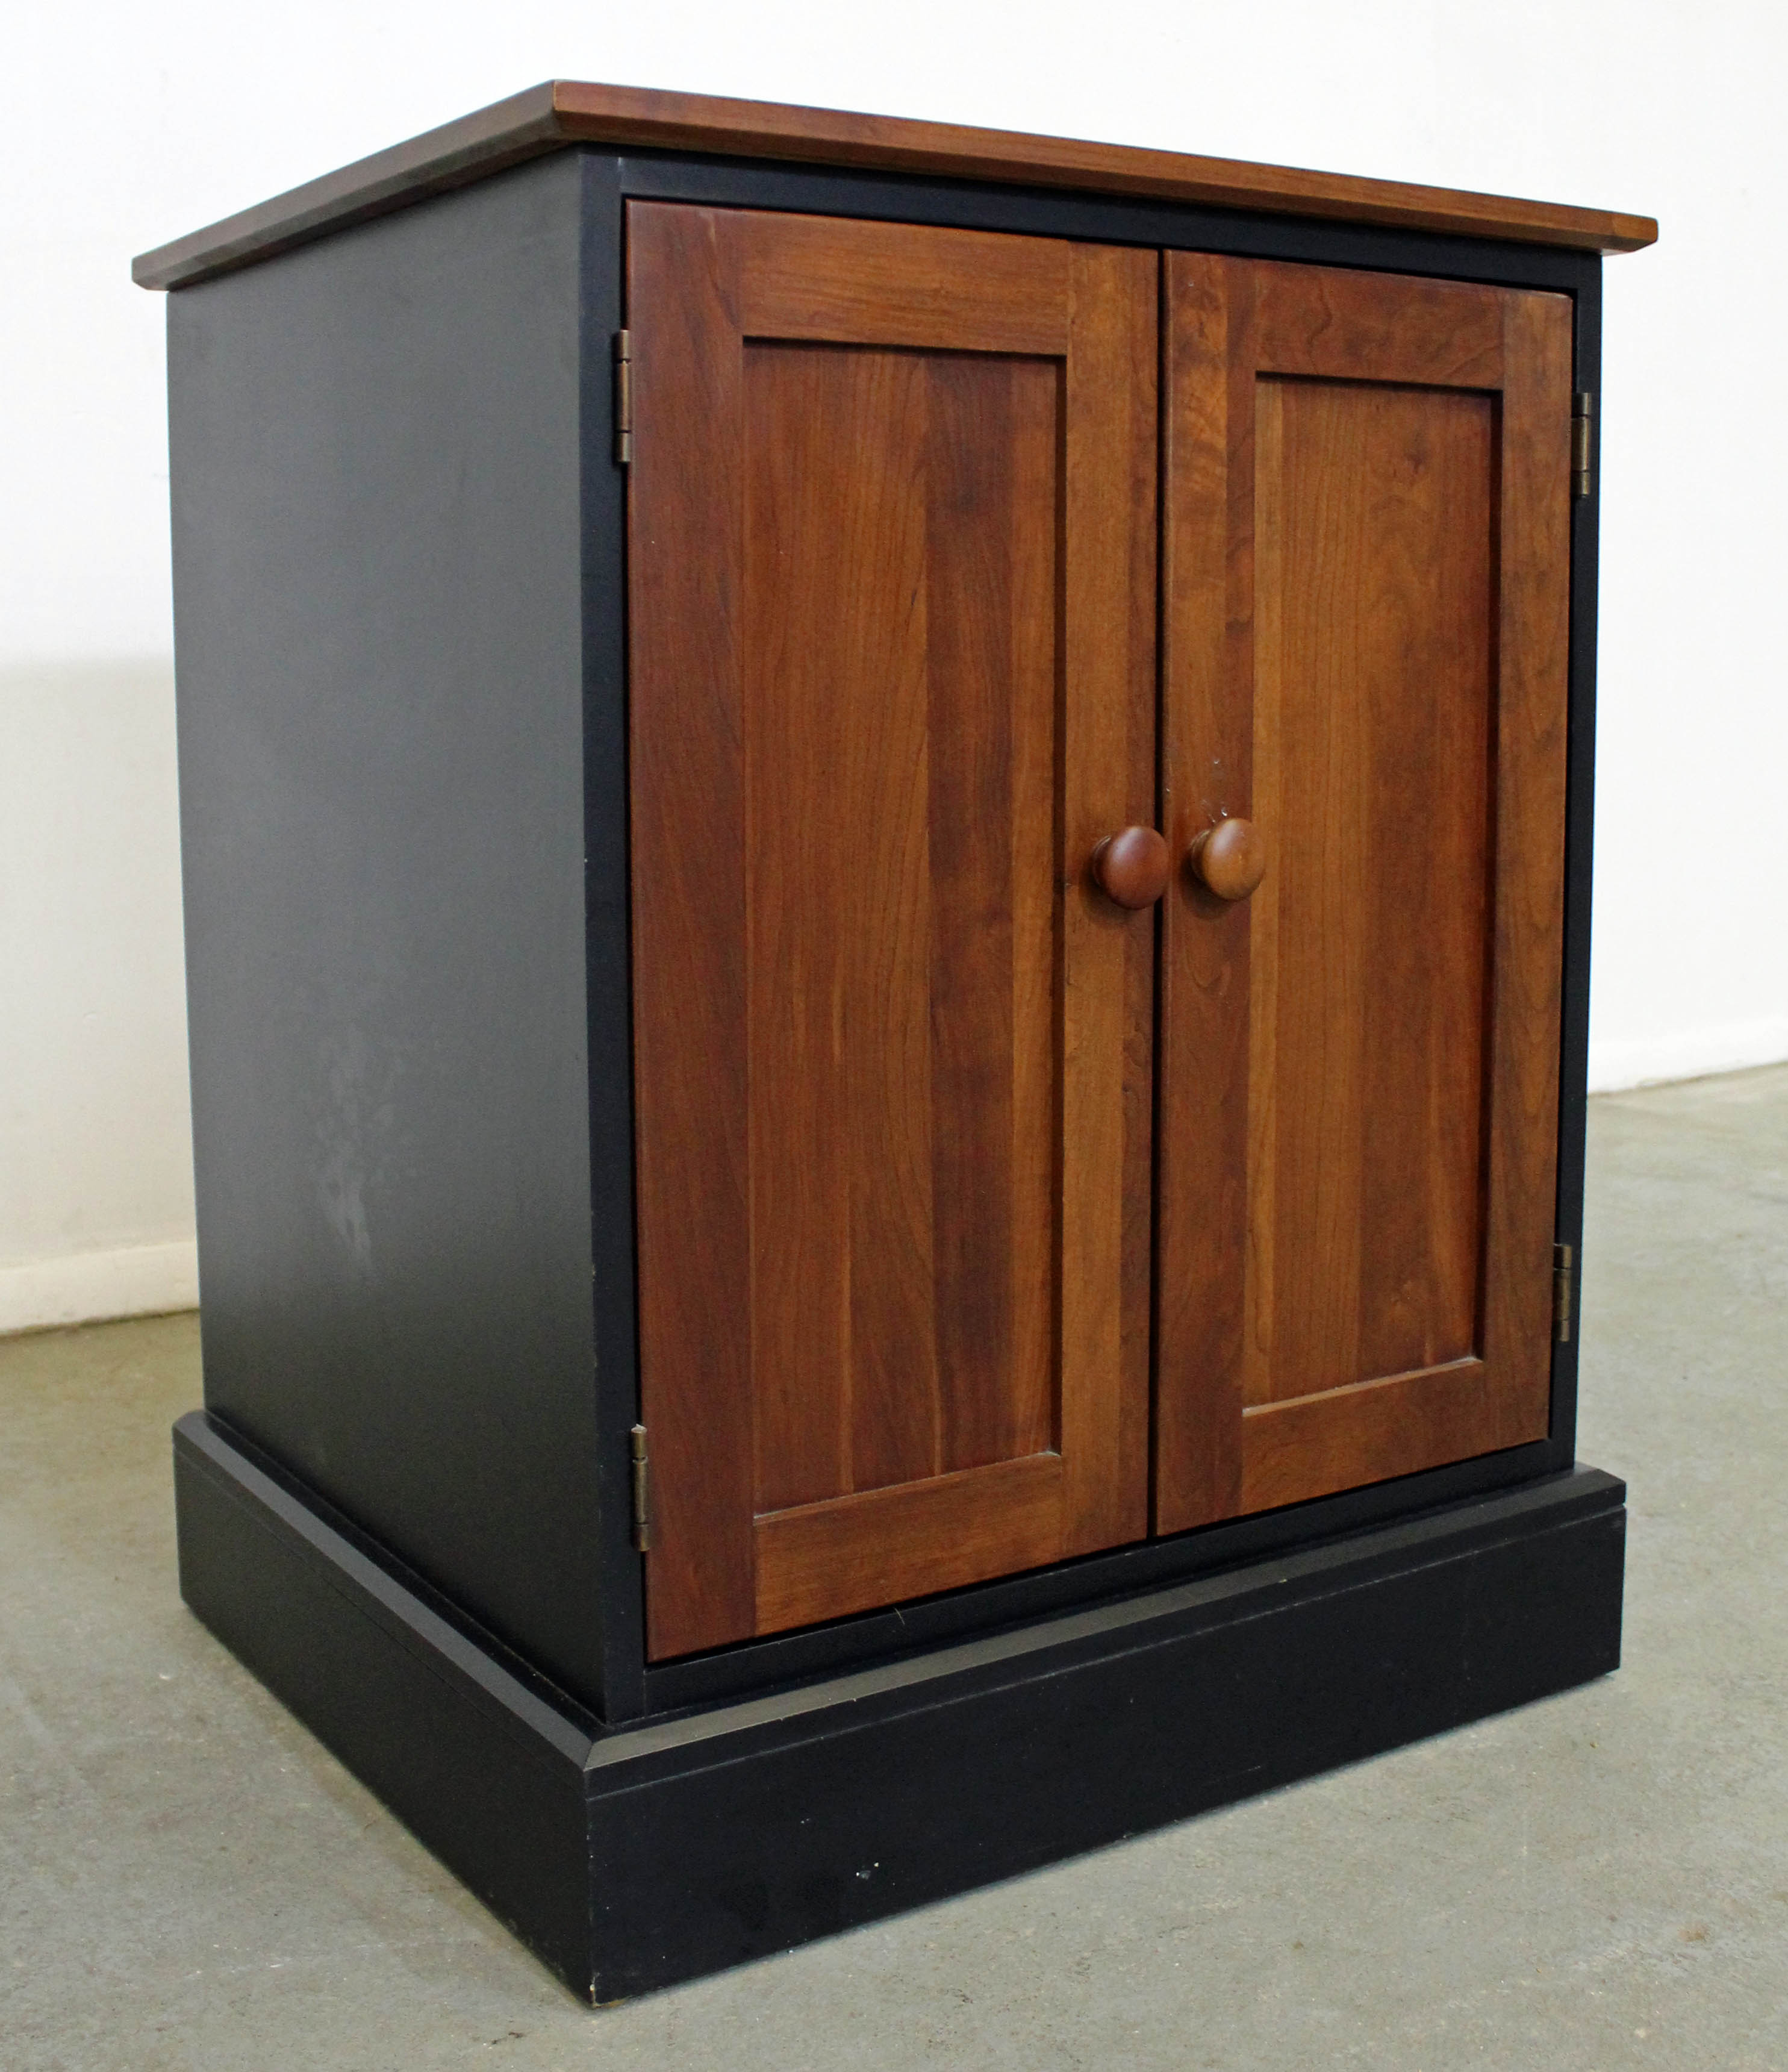 Ethan Allen Impressions Cherry Ebonized Nightstand Cabinet For At 1stdibs